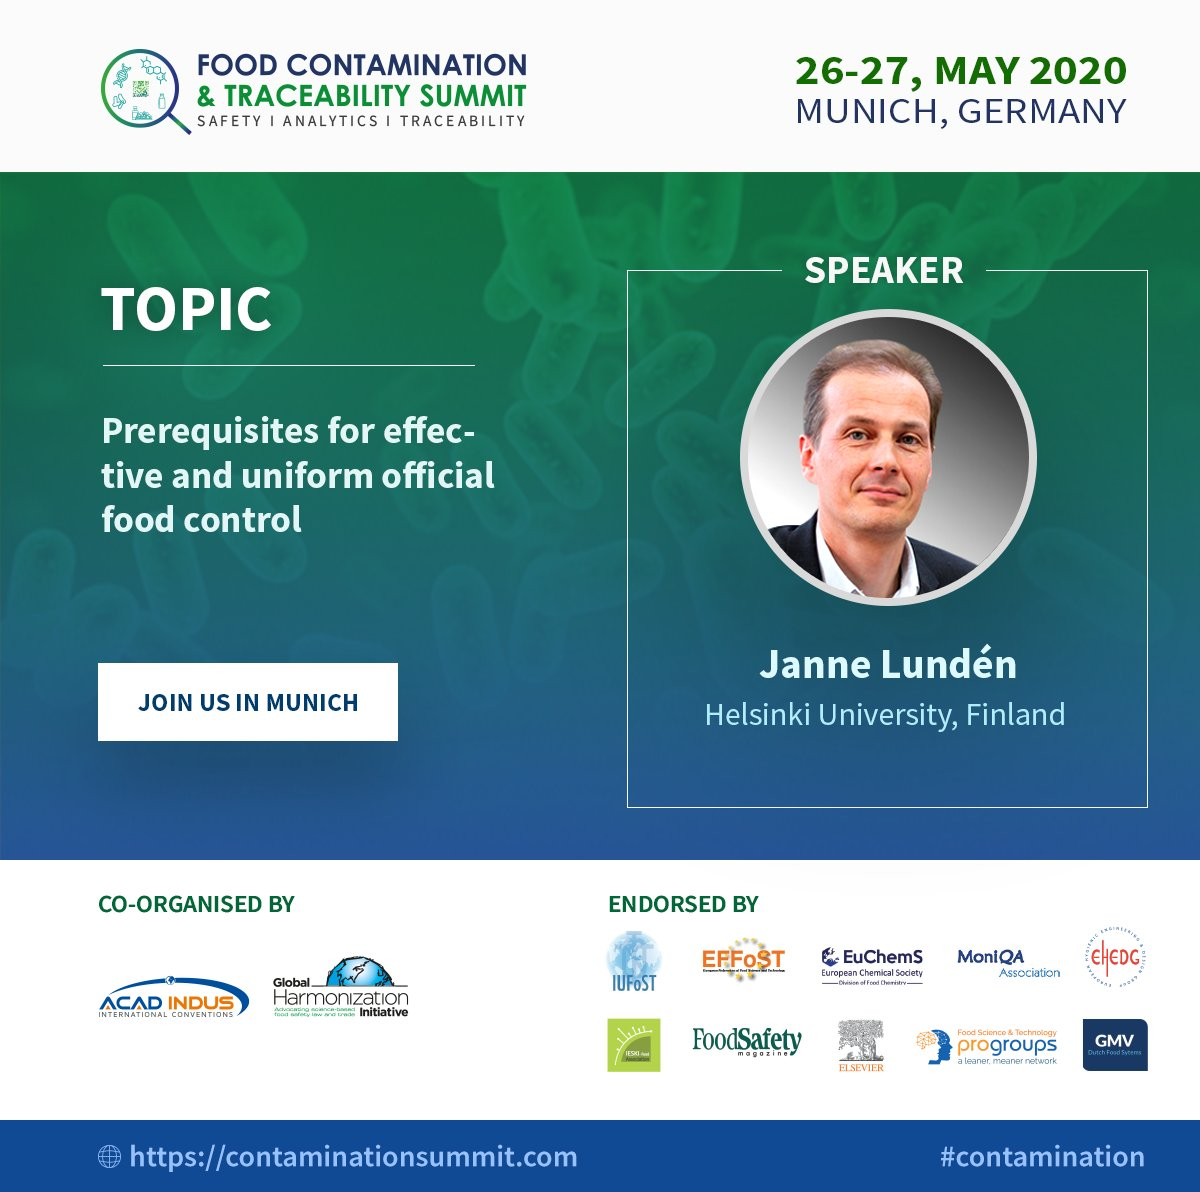 Our speaker Prof. Janne Lundén will be presenting on the Pre-requisites for effective & uniform official food control at the Food Contamination Summit, 26-27th May 2020, Germany.  Call for abstracts & posters closes on the 10th Feb!   Register NOW  at https://lnkd.in/demDmRH pic.twitter.com/SEA2TgmbF9